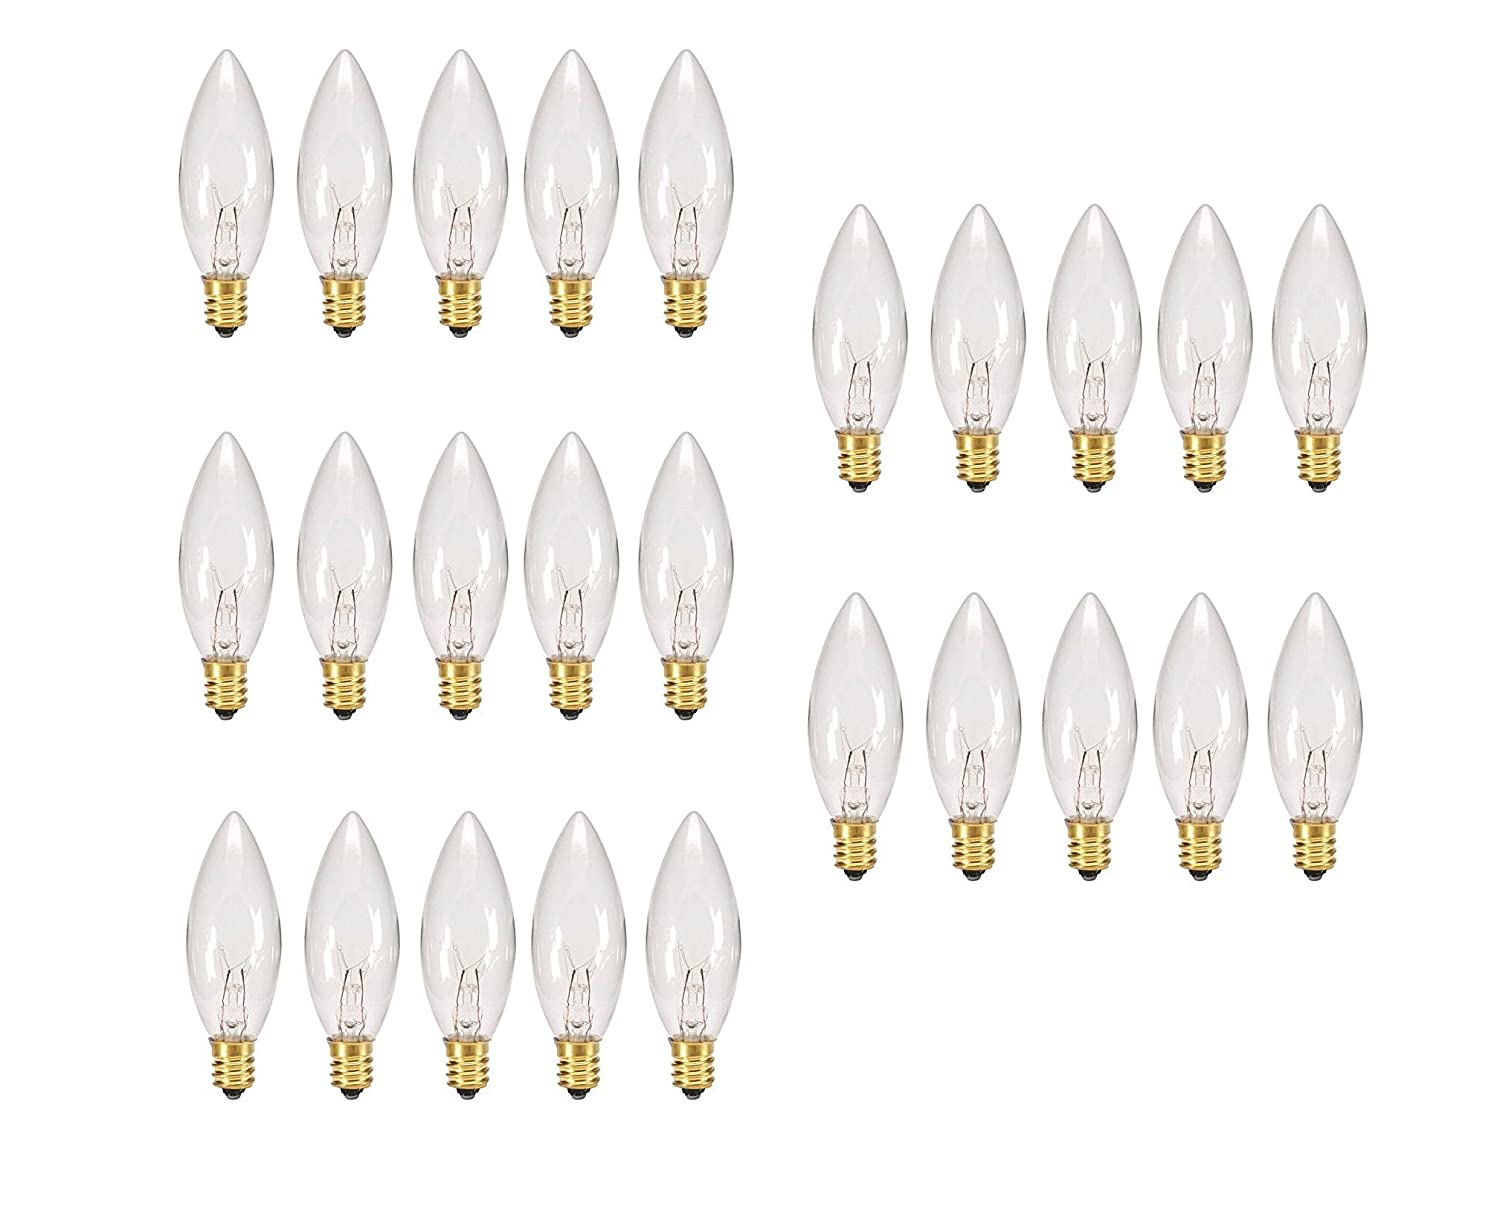 Replacement Light Bulbs for Electric Candle Lamps - 7 Watt, Clear, Pack of 25 Bulbs